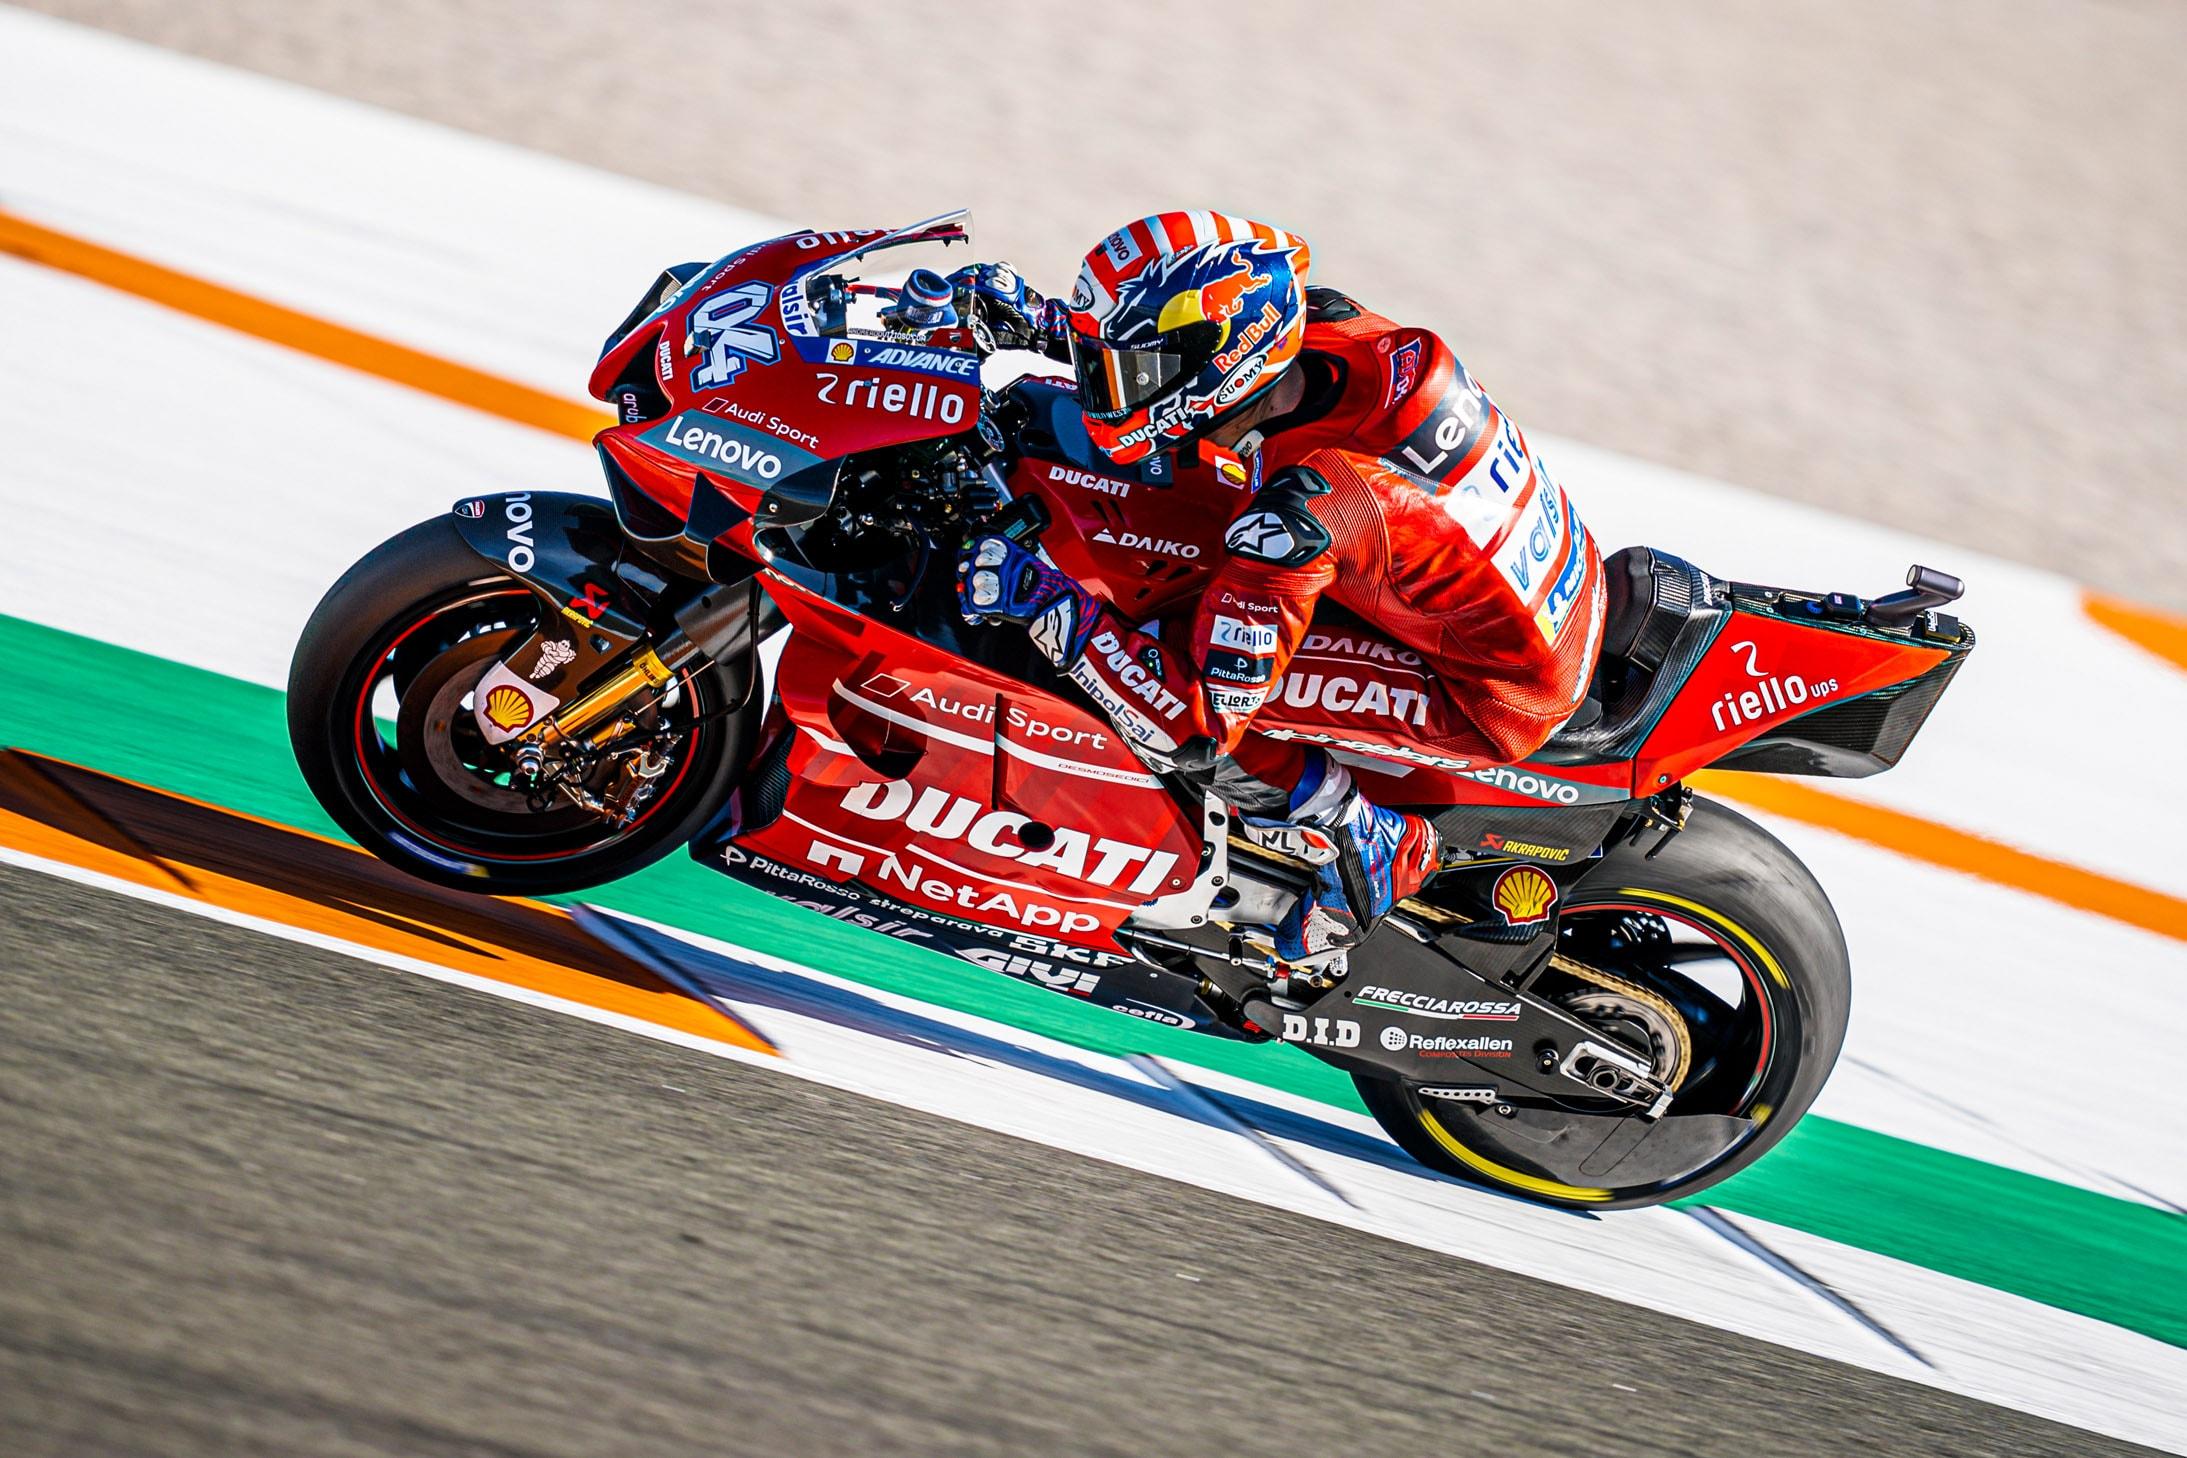 2020 Motogp Season Officially Gets Underway At Valencia Ducati Testing At The Ricardo Tormo Circuit Total Motorcycle